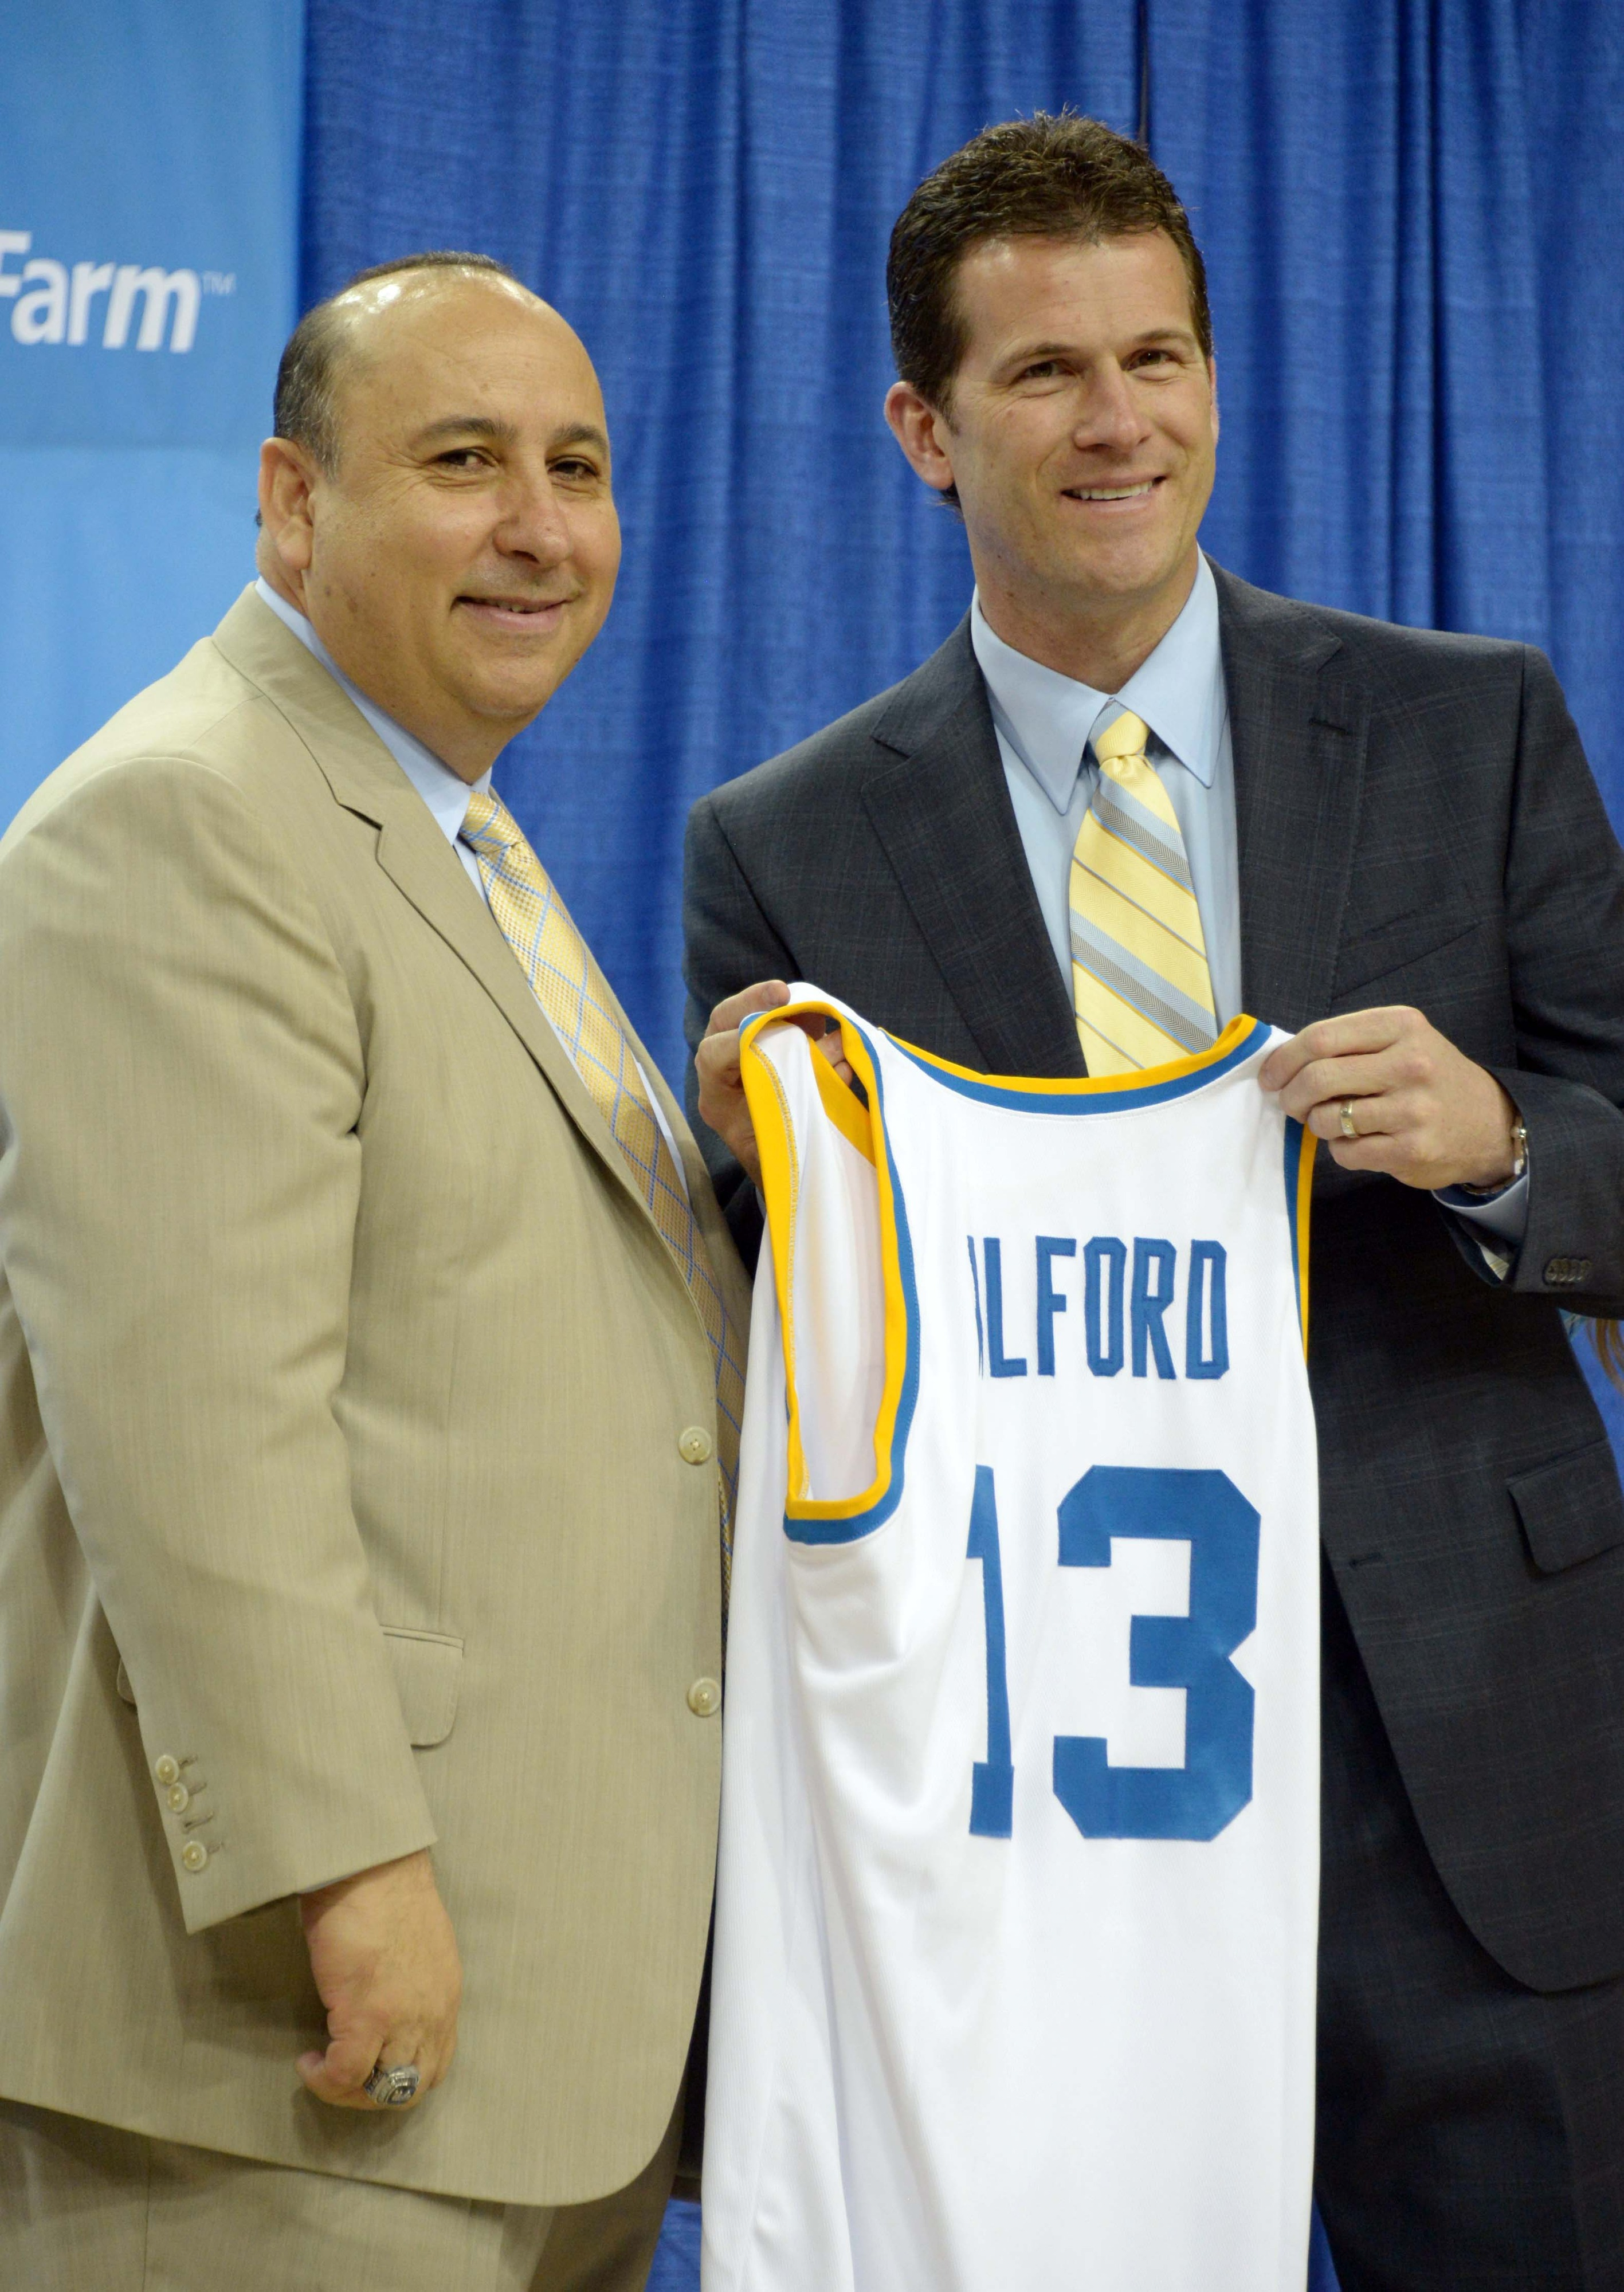 Of course Alford is smiling: he snuck in an extra $645K into his signing bonus!